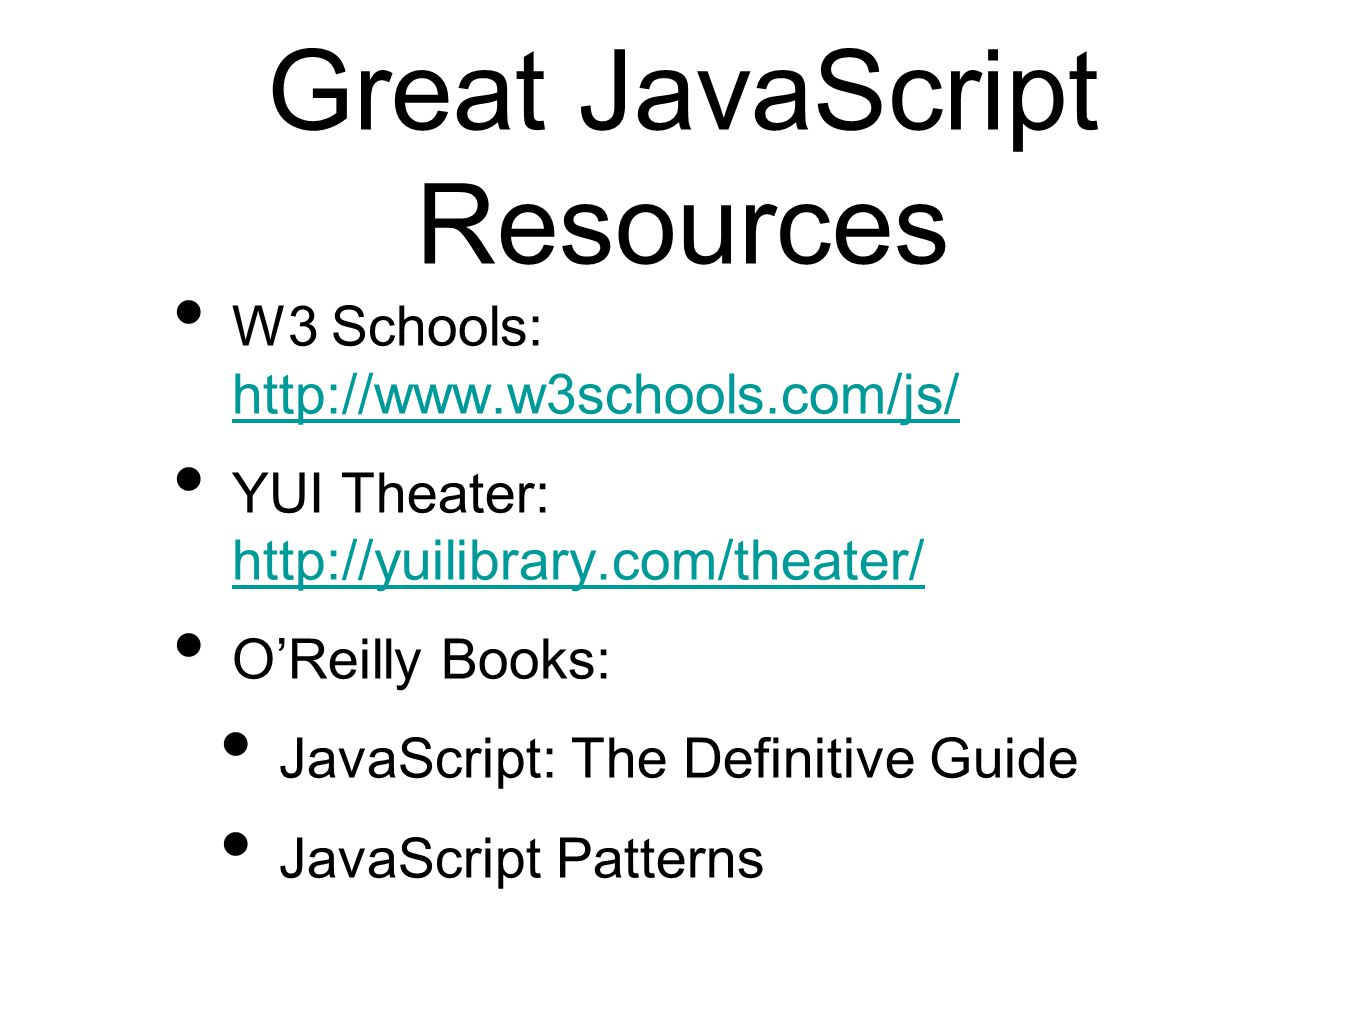 Great JavaScript Resources W3 Schools: http://www.w3schools.com/js/ http://www.w3schools.com/js/ YUI Theater: http://yuilibrary.com/theater/ http://yuilibrary.com/theater/ O'Reilly Books: JavaScript: The Definitive Guide JavaScript Patterns